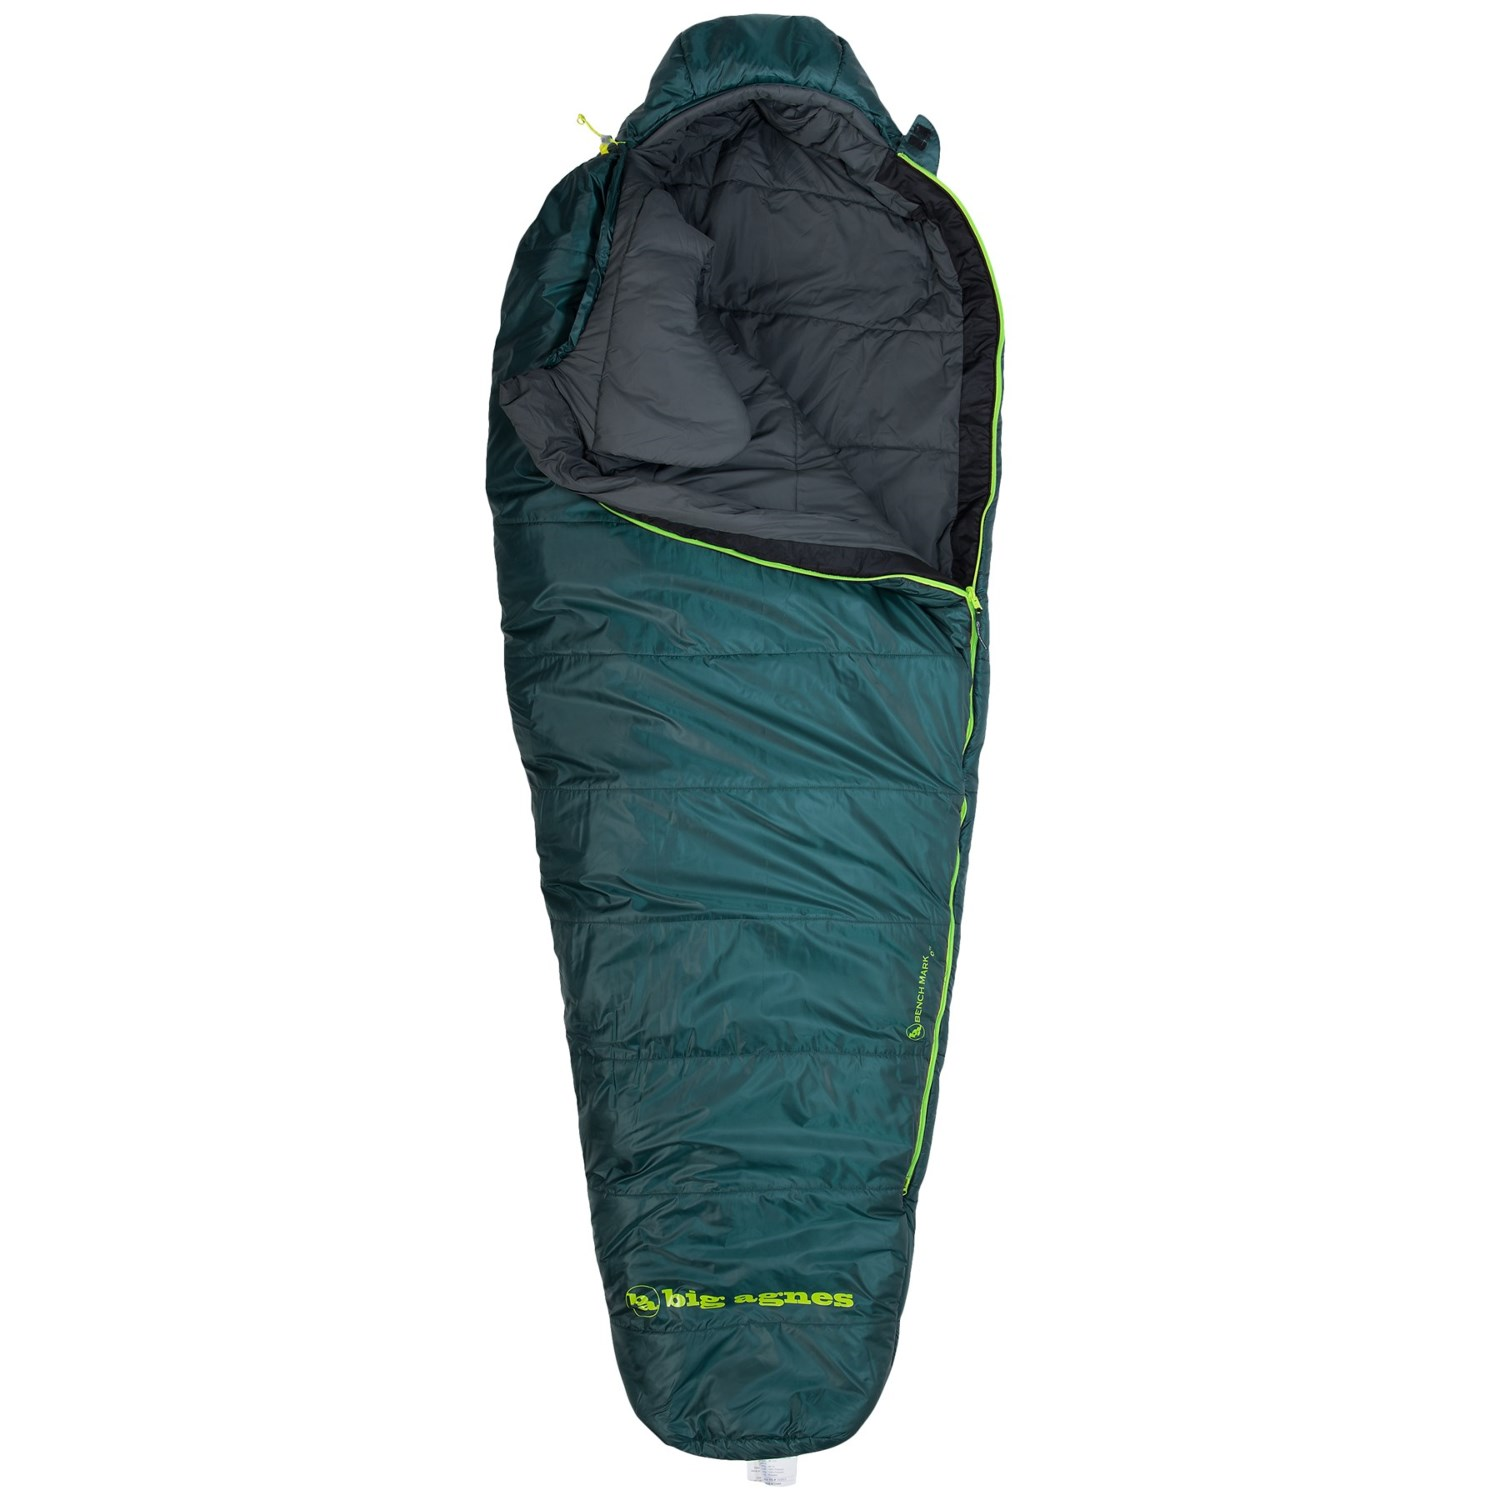 Big Agnes 0°F Benchmark Sleeping Bag - Mummy - Save 34%